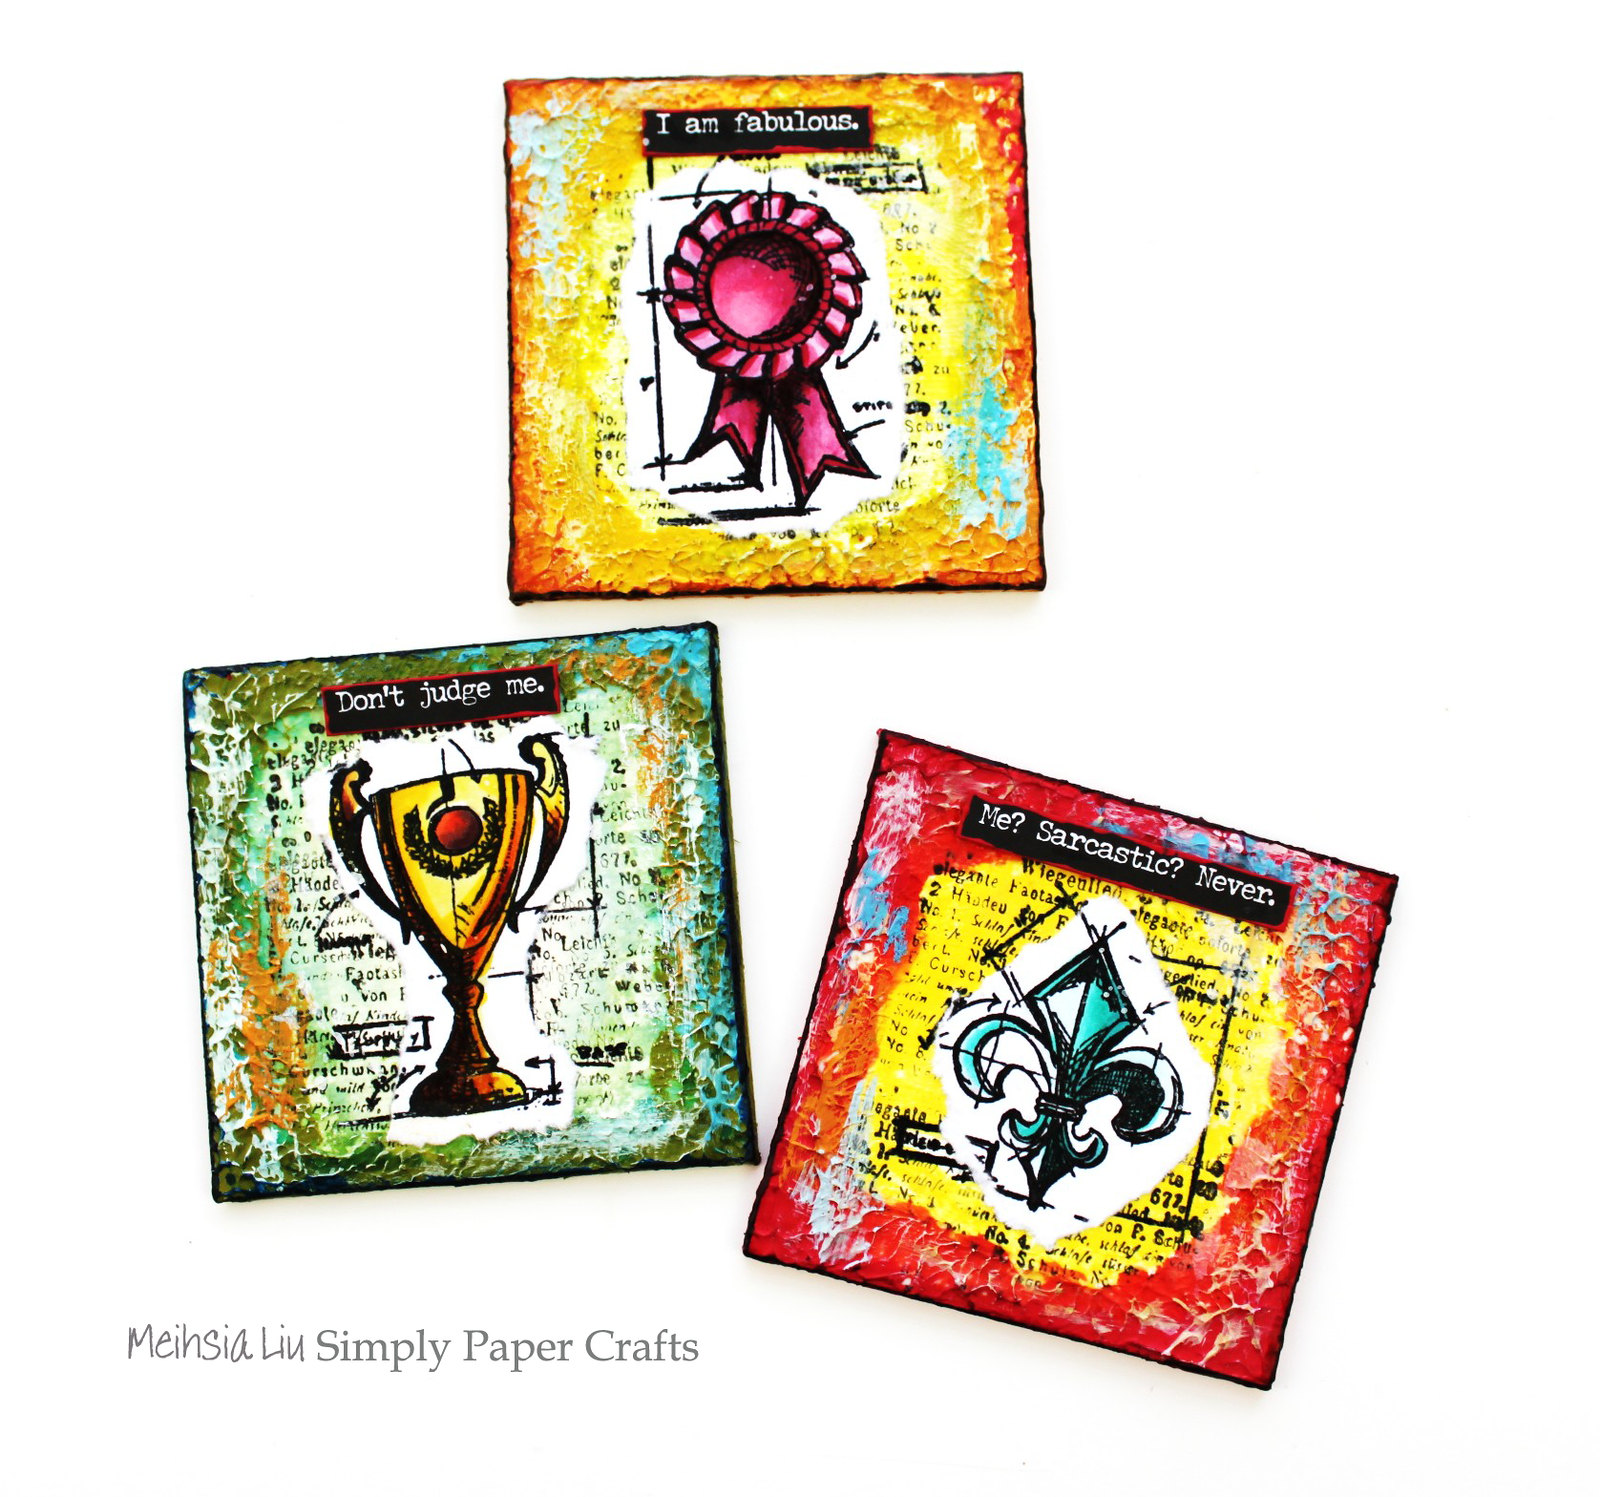 Meihsia Liu Simply Paper Crafts Mixed Media Mini Canvas Not a Card Simon Says Stamp Tim Holtz 5